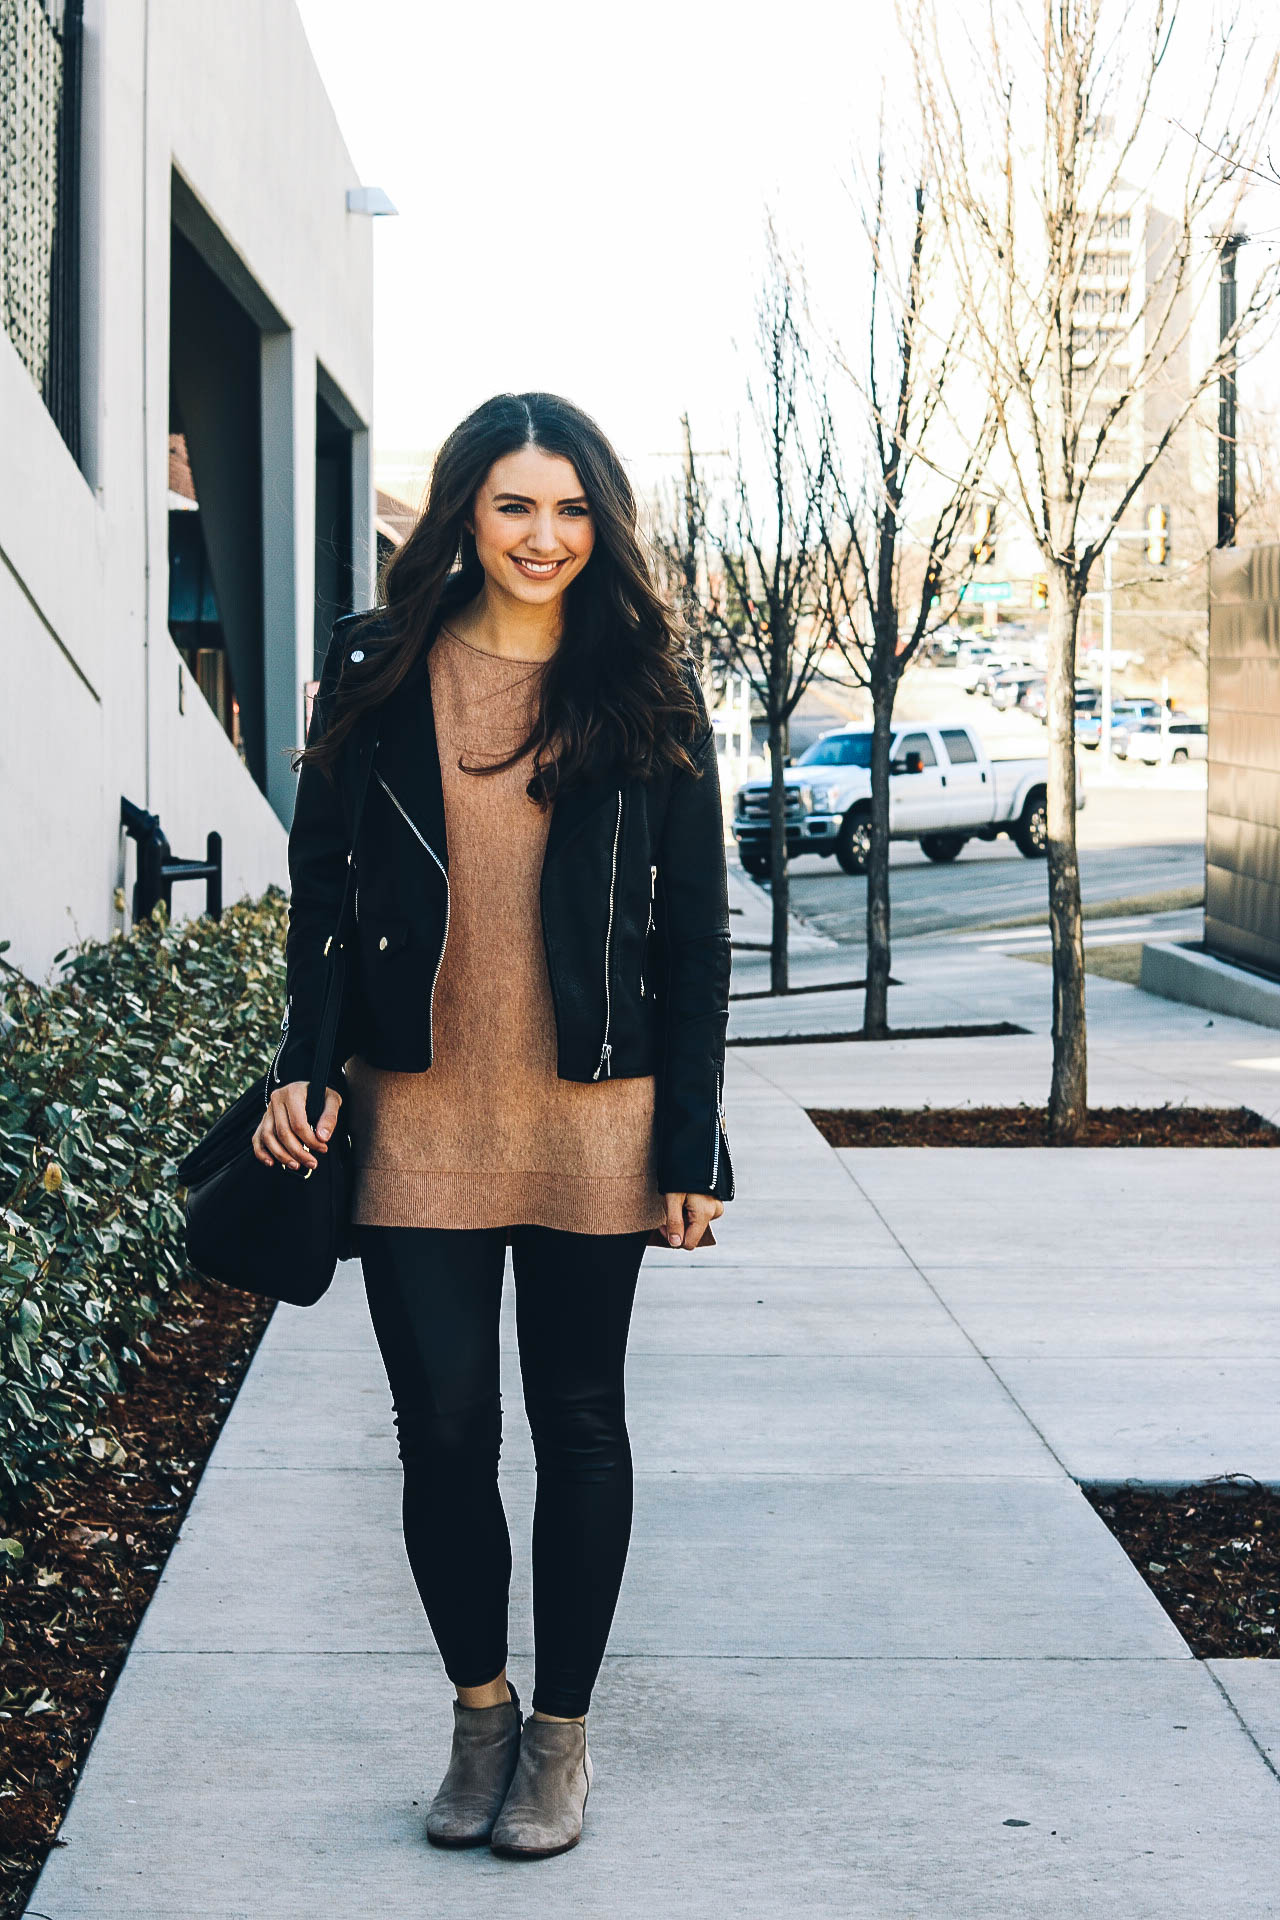 chic comfy  edgy style with faux leather – happily lindsey